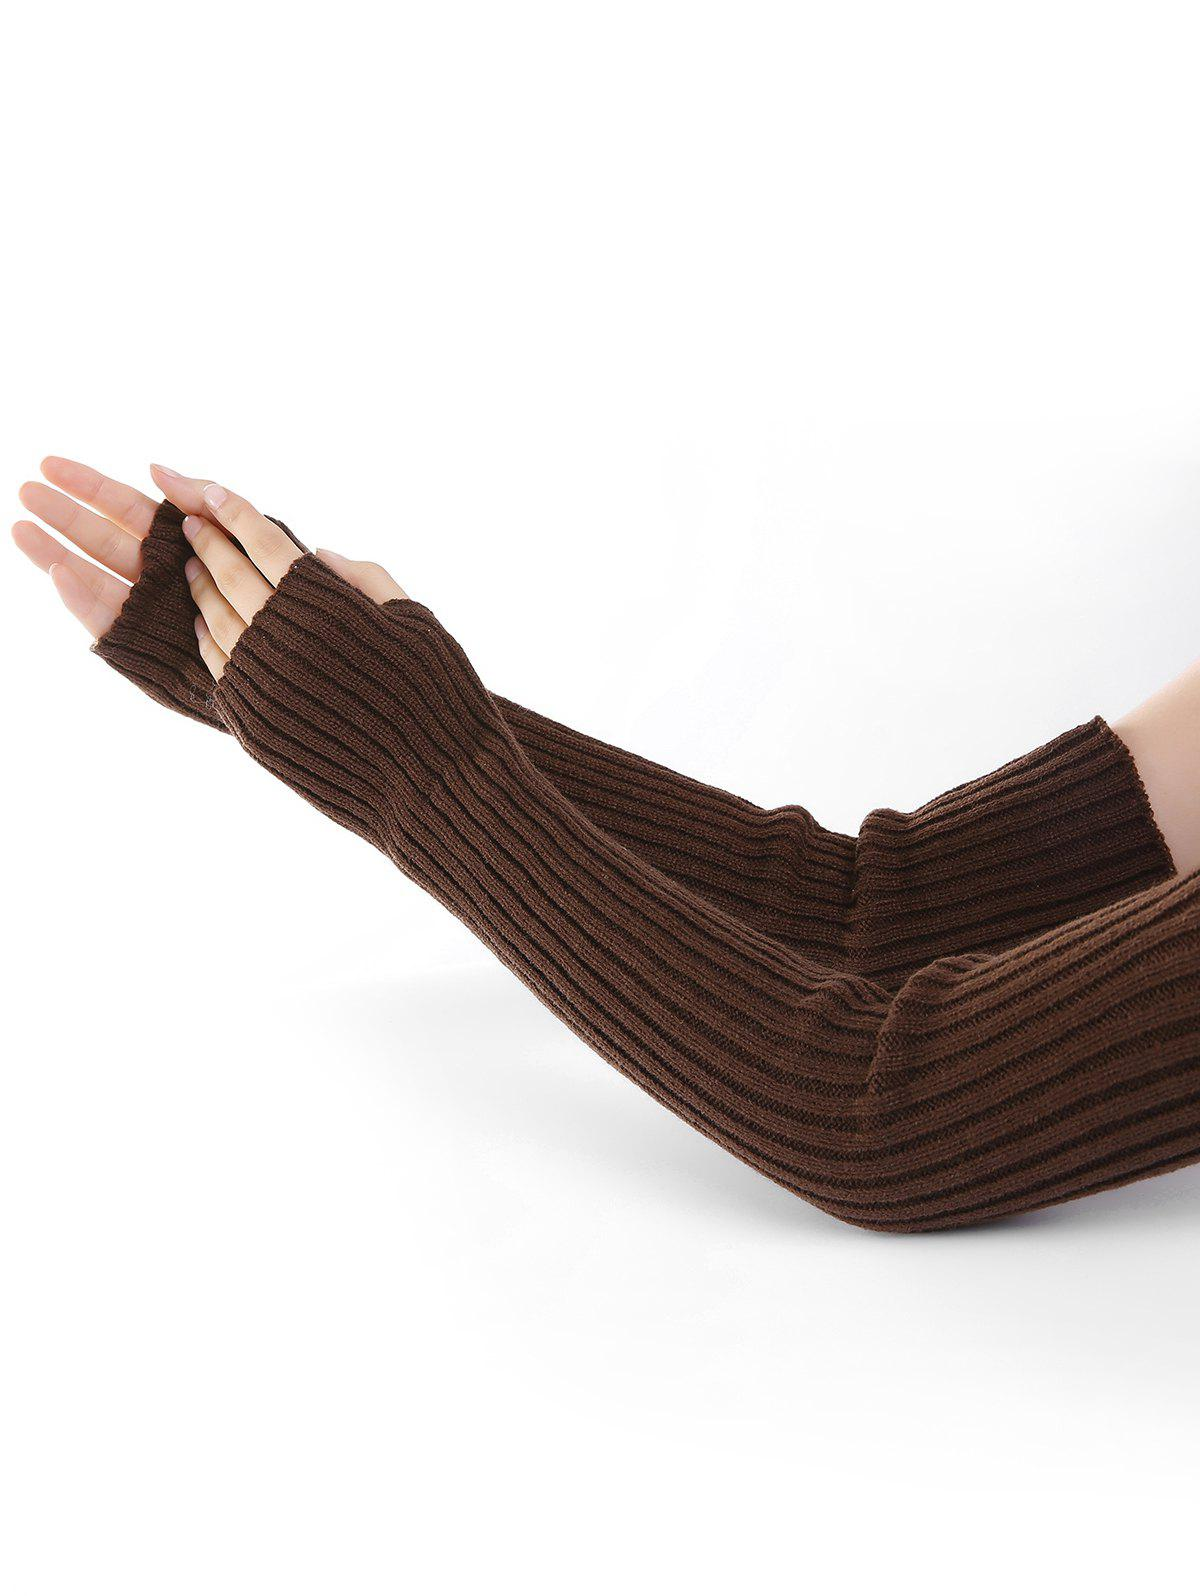 Soft Vertical Striped Pattern Crochet Knitted Arm Warmers - COFFEE